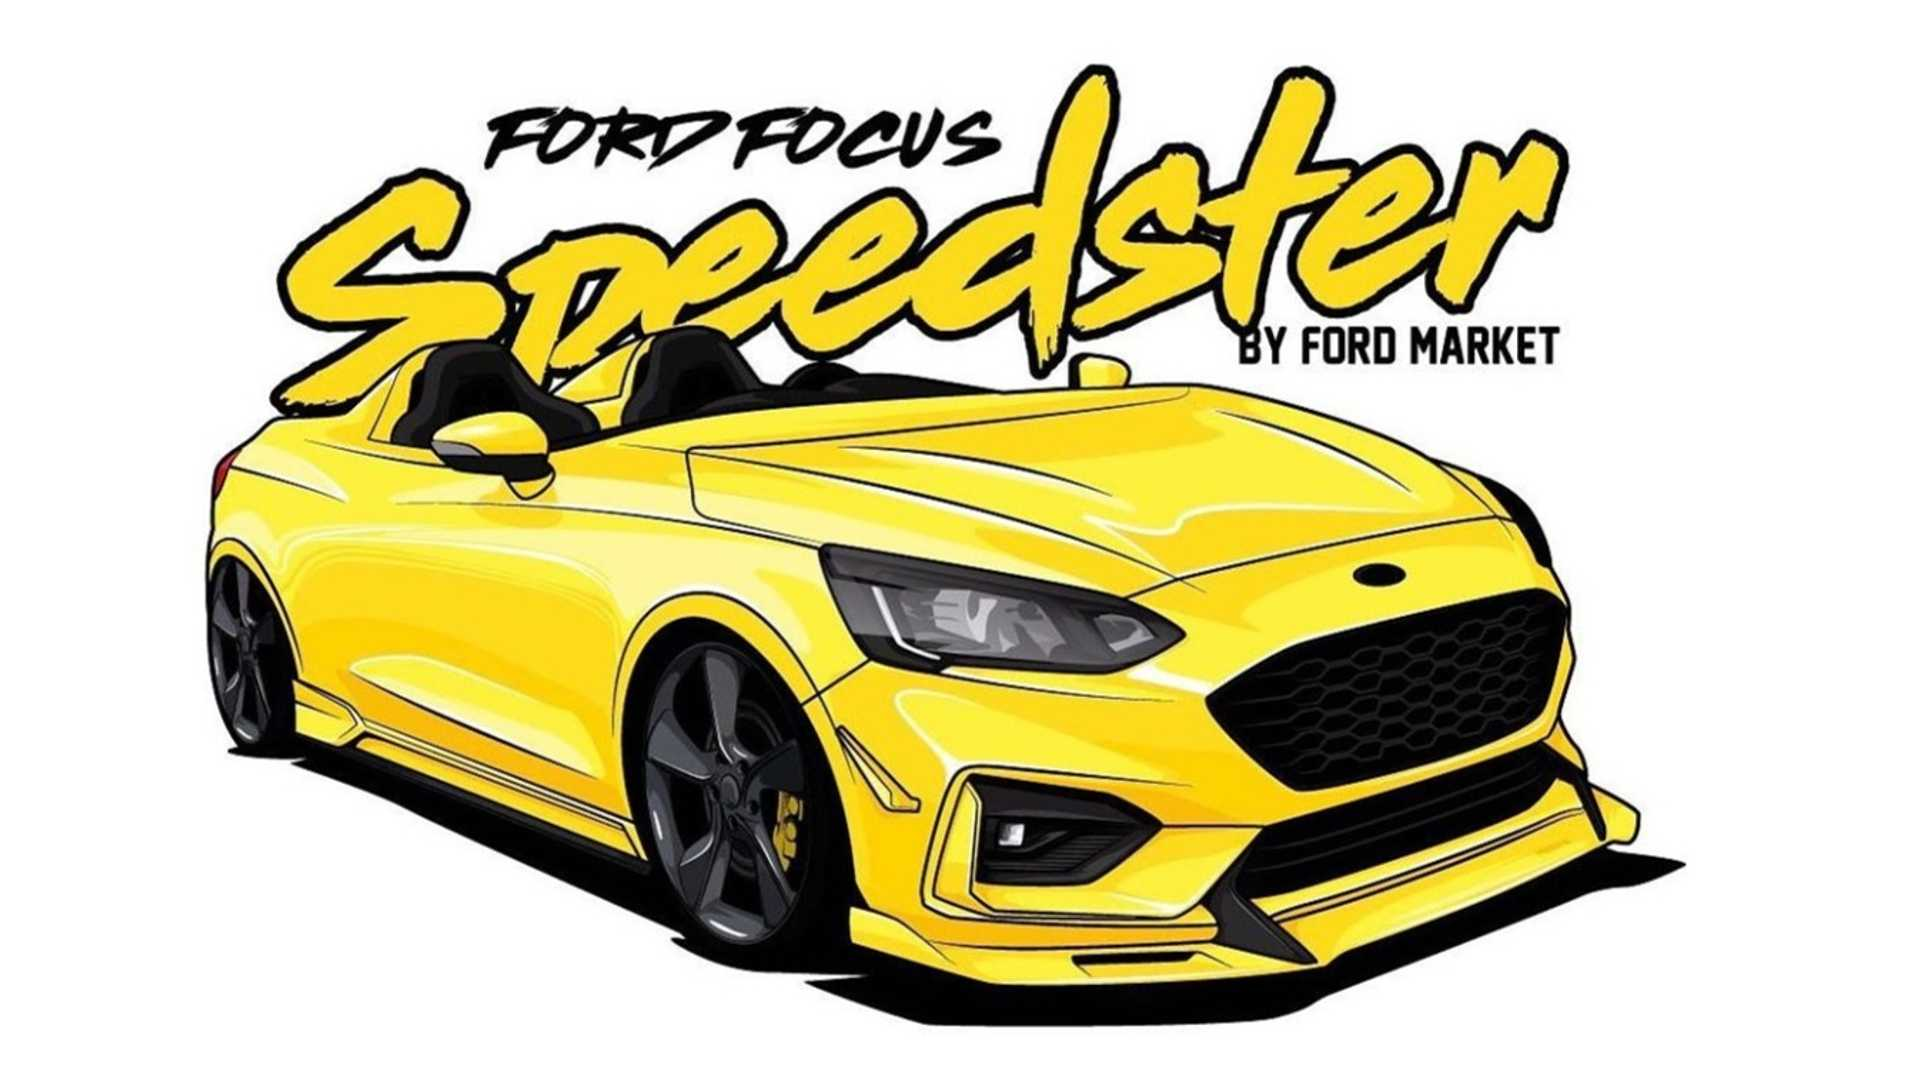 Ford_Focus_speedster_conversion_0013